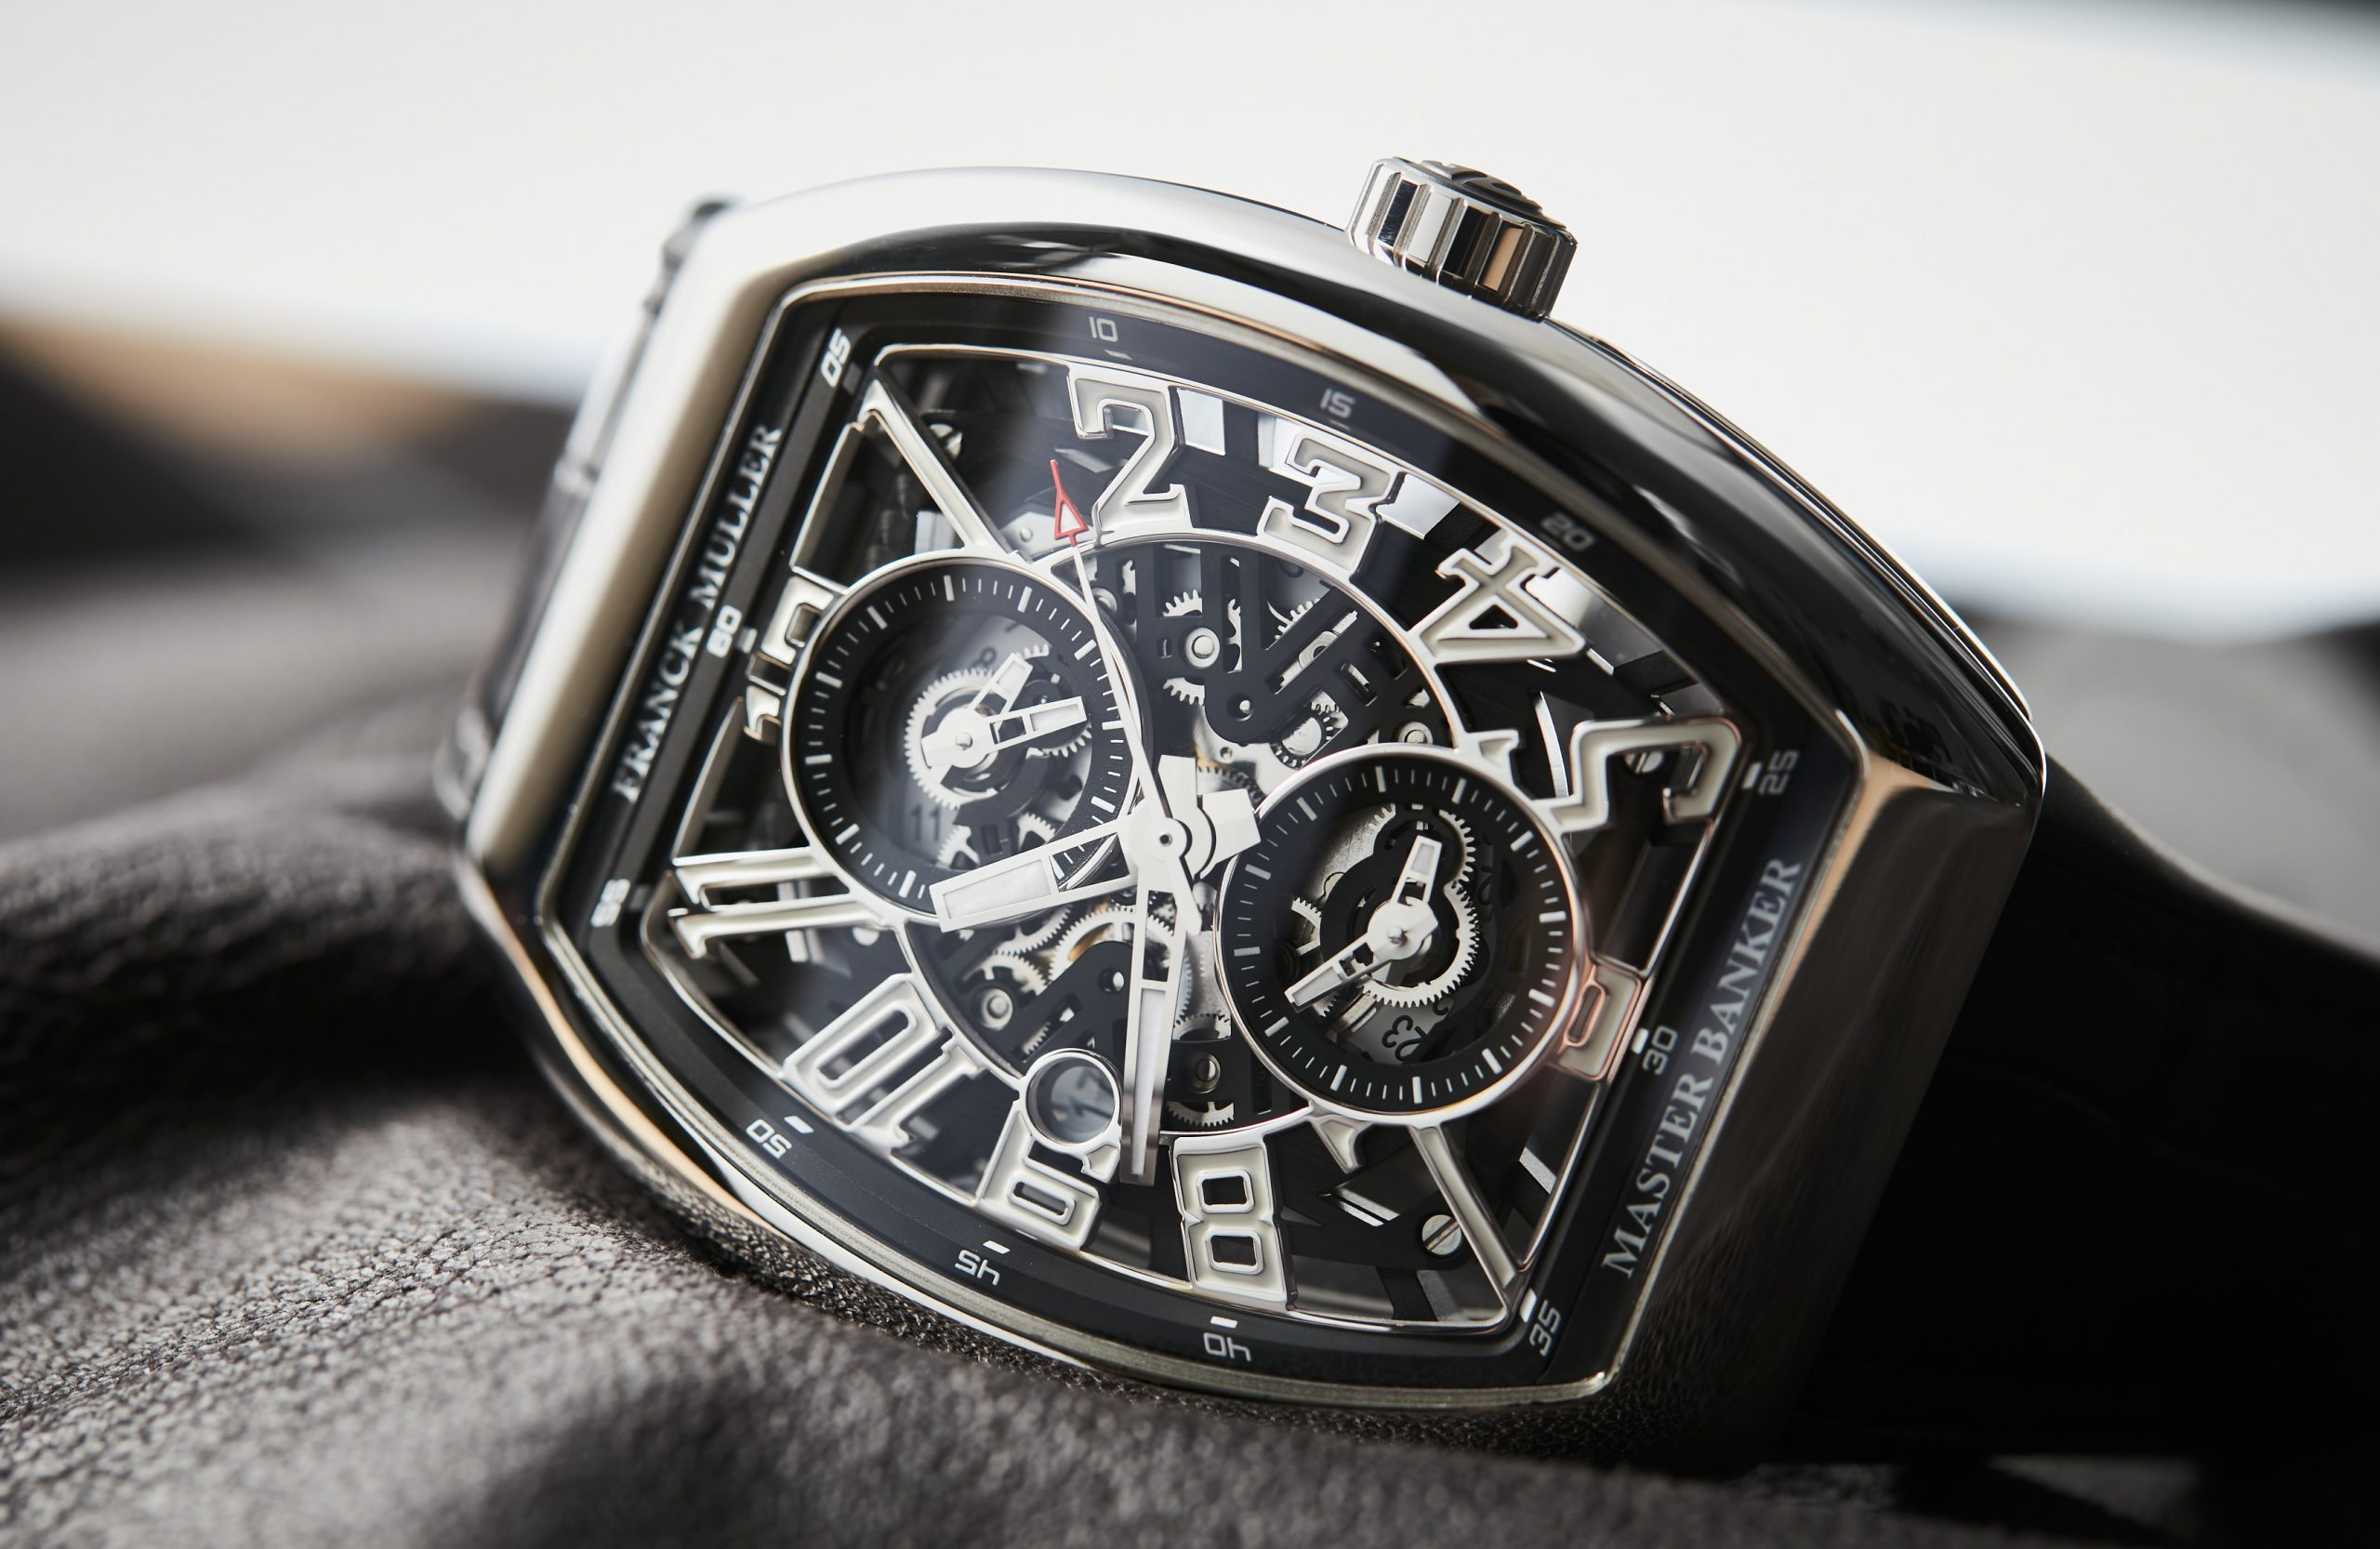 INTRODUCING: The triple threat of the Franck Muller Master Banker in steel